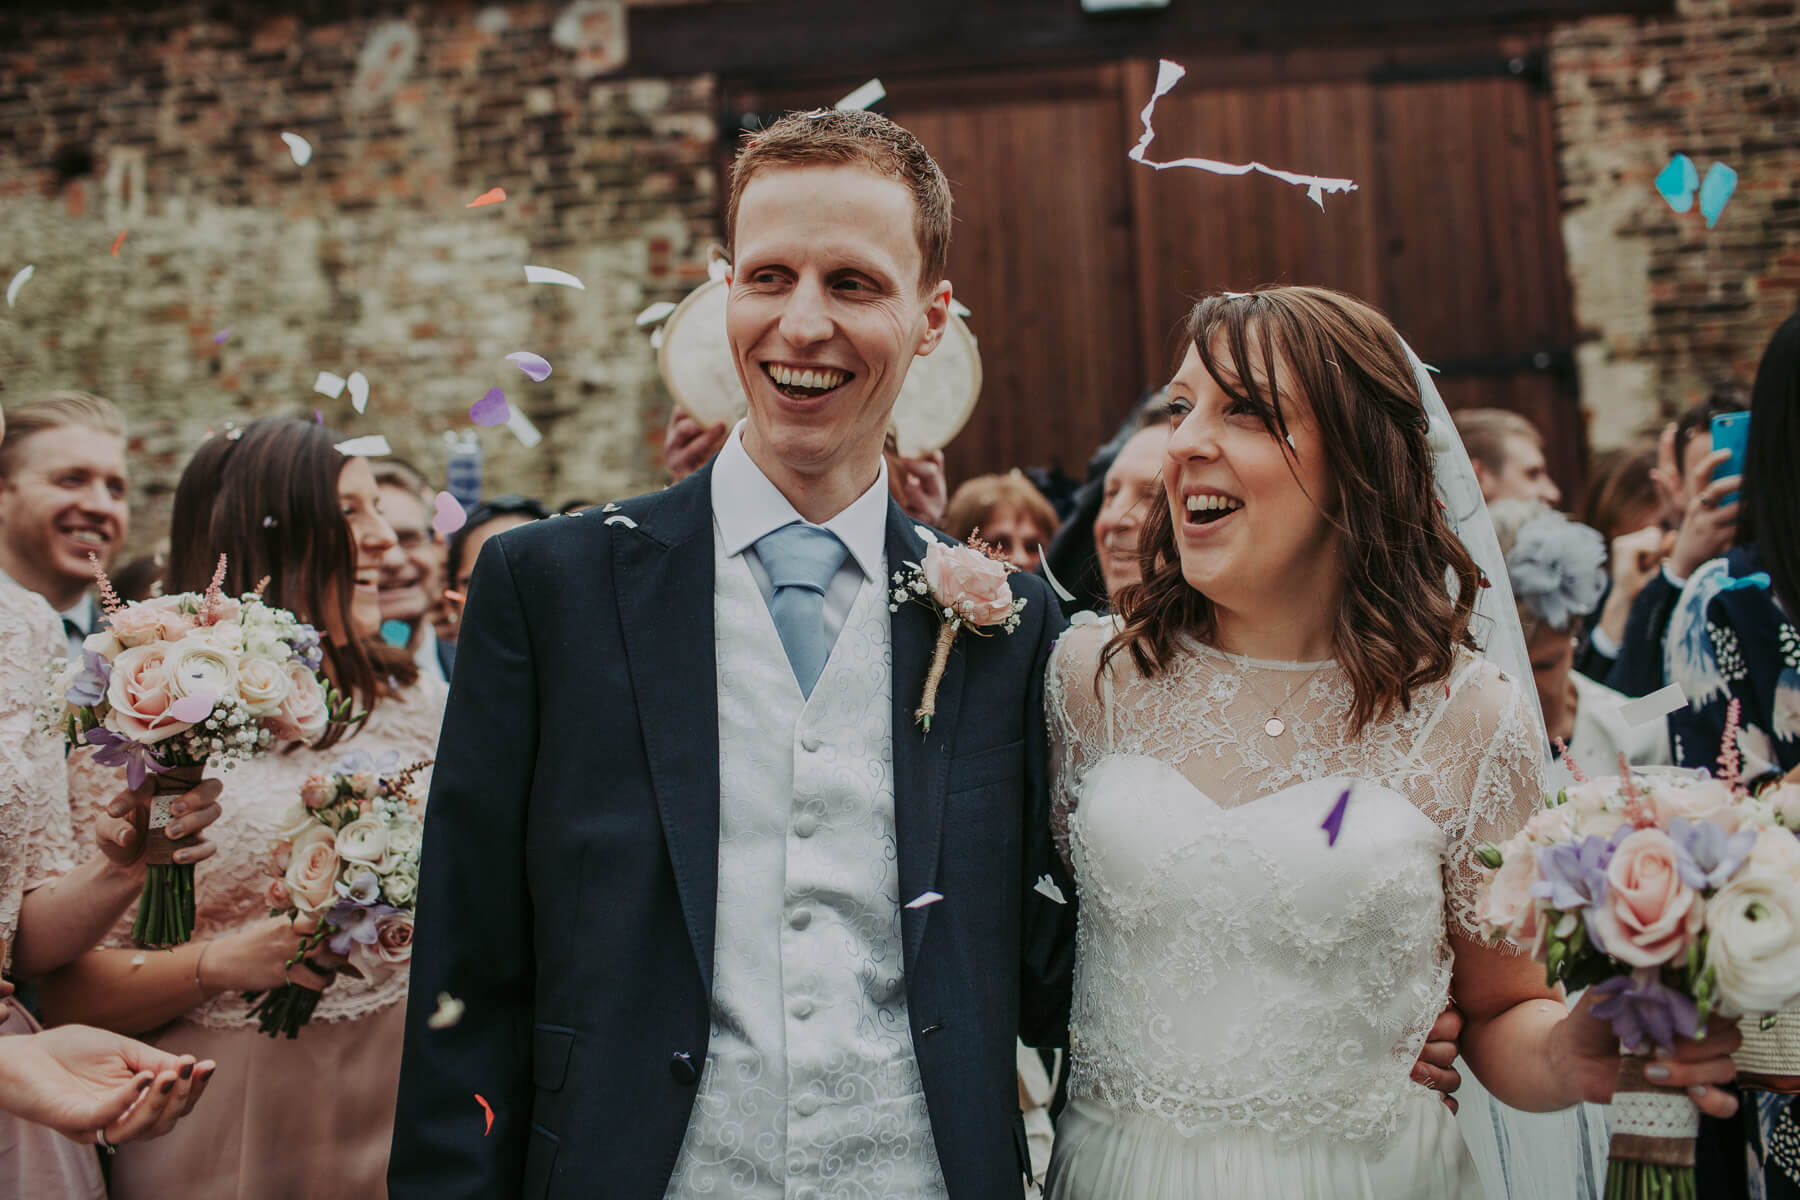 Danielle & Craig | The Normans Wedding 189